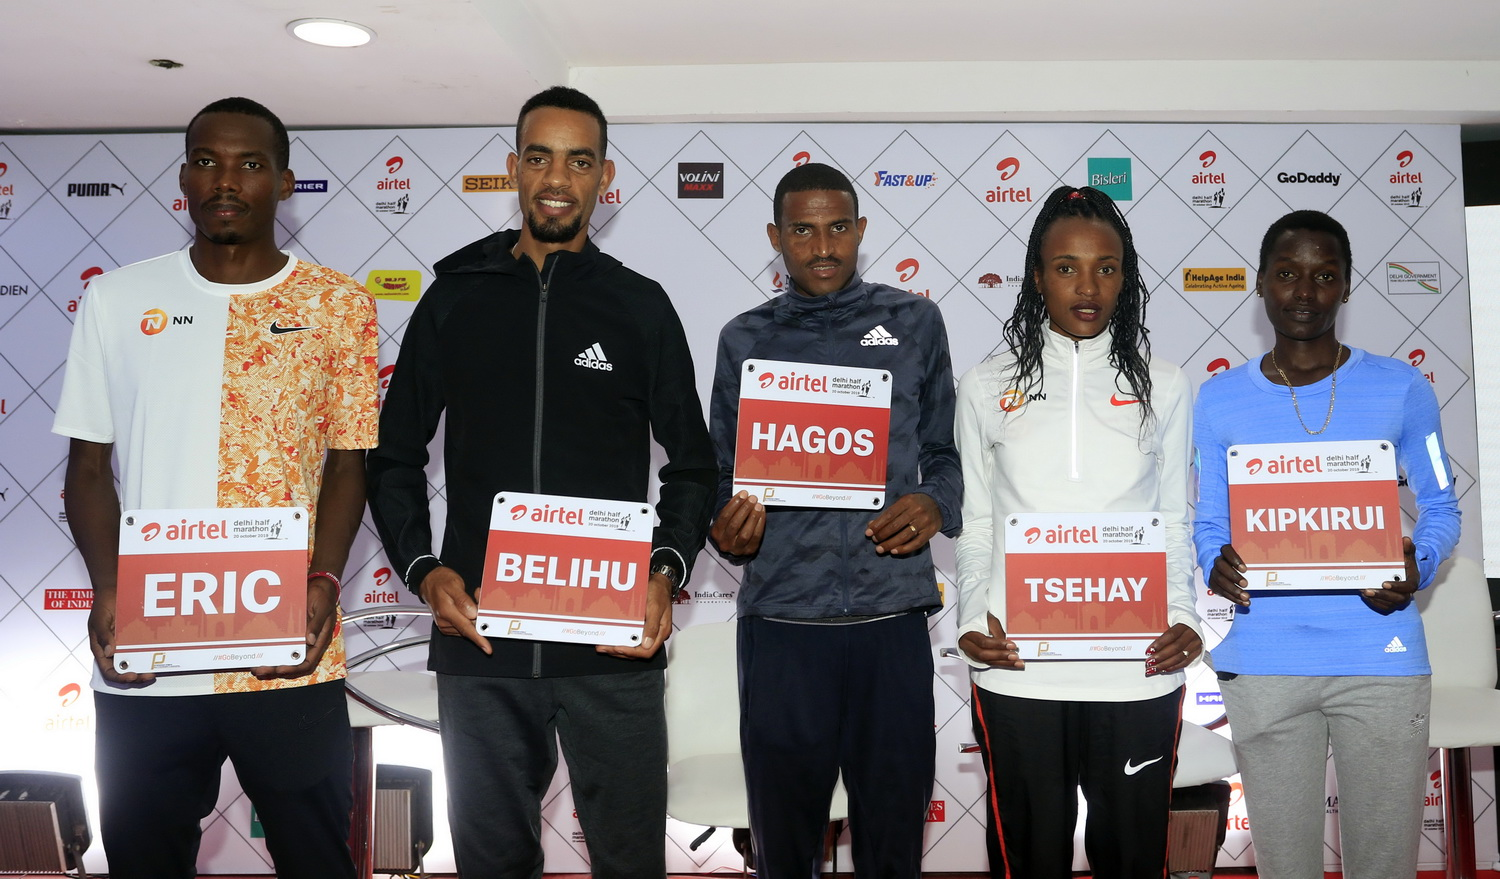 Defending champions Belihu and Gemechu to chase Airtel Delhi Half Marathon course records - Athletics Illustrated